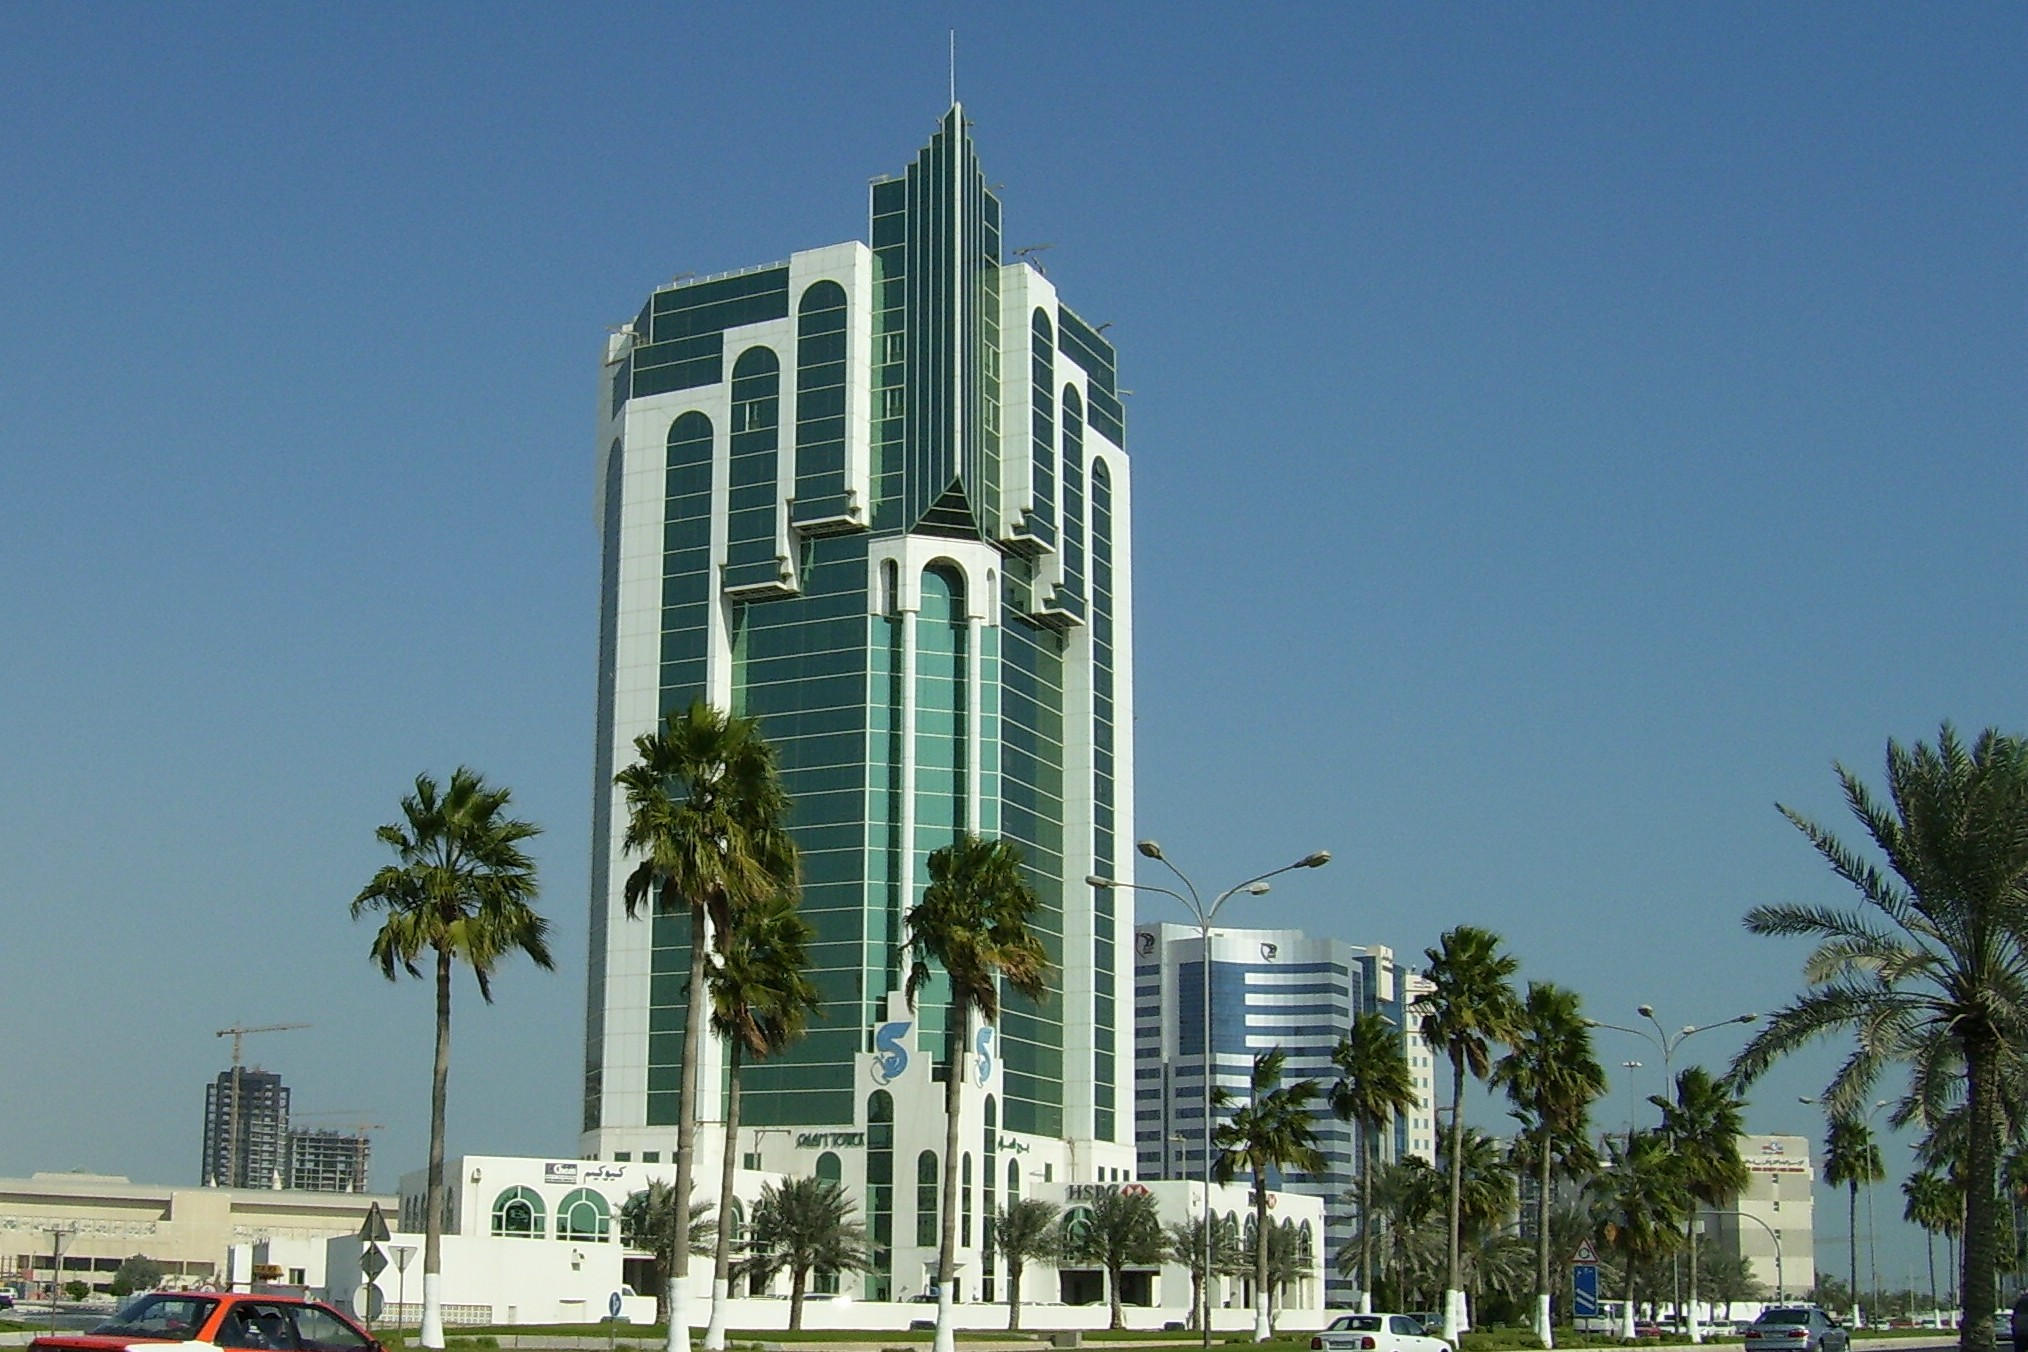 Doha Qatar  city photo : DOHA,QATAR BUILDING by frisbeerichard on DeviantArt